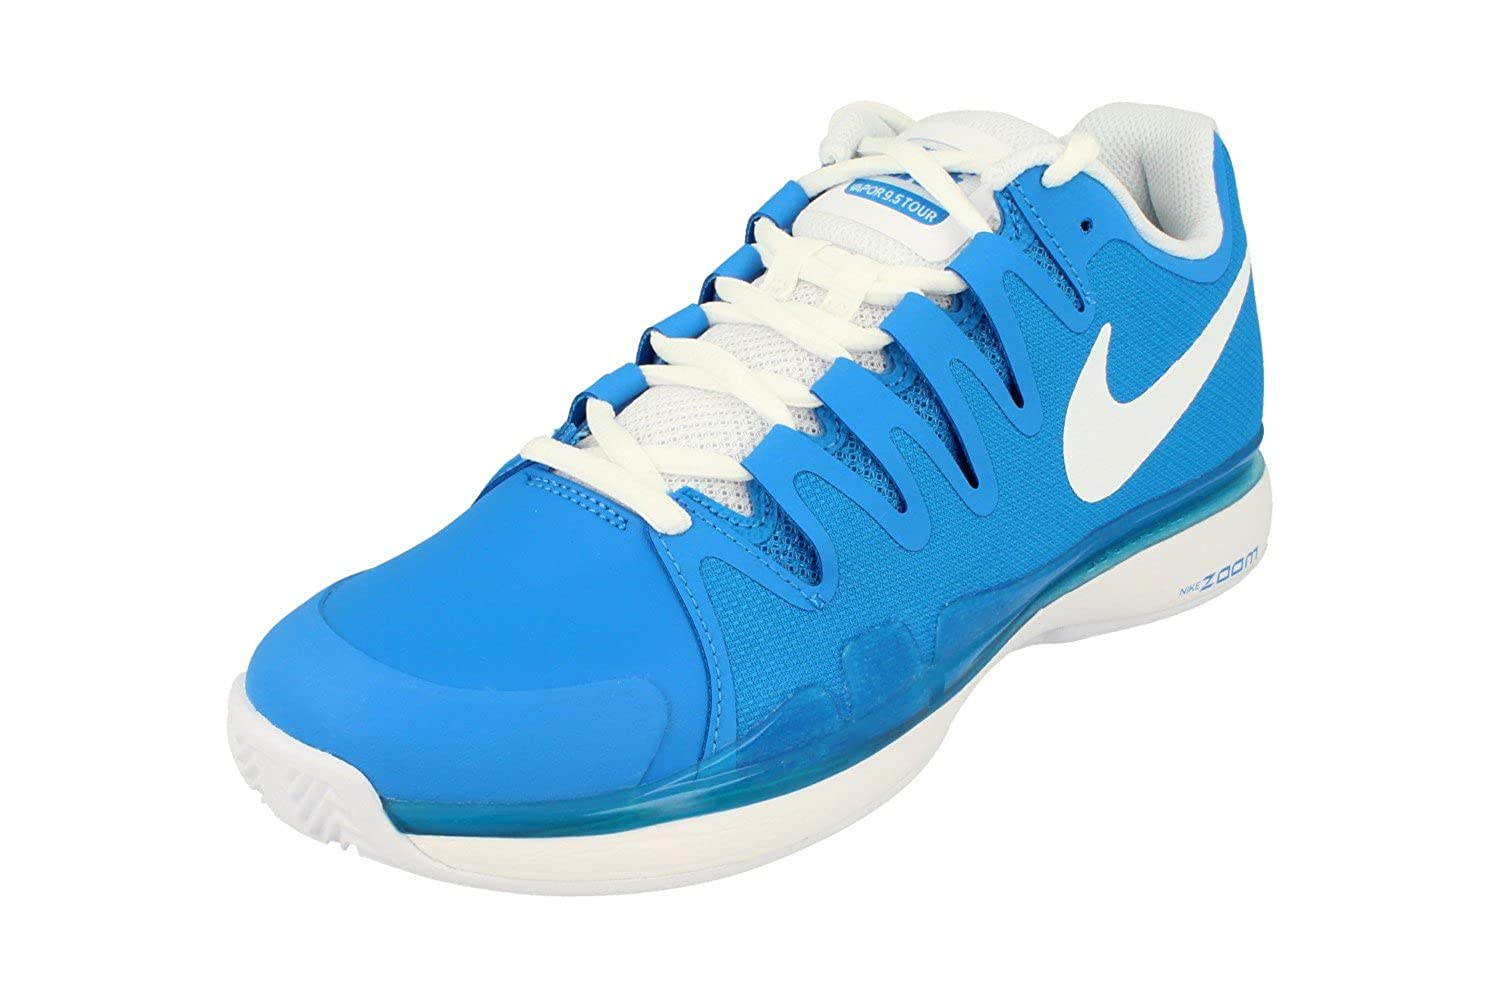 NIKE Zoom Vapor 9.5 Tour Clay Hommes Tennis Chaussures 631457 Sneakers